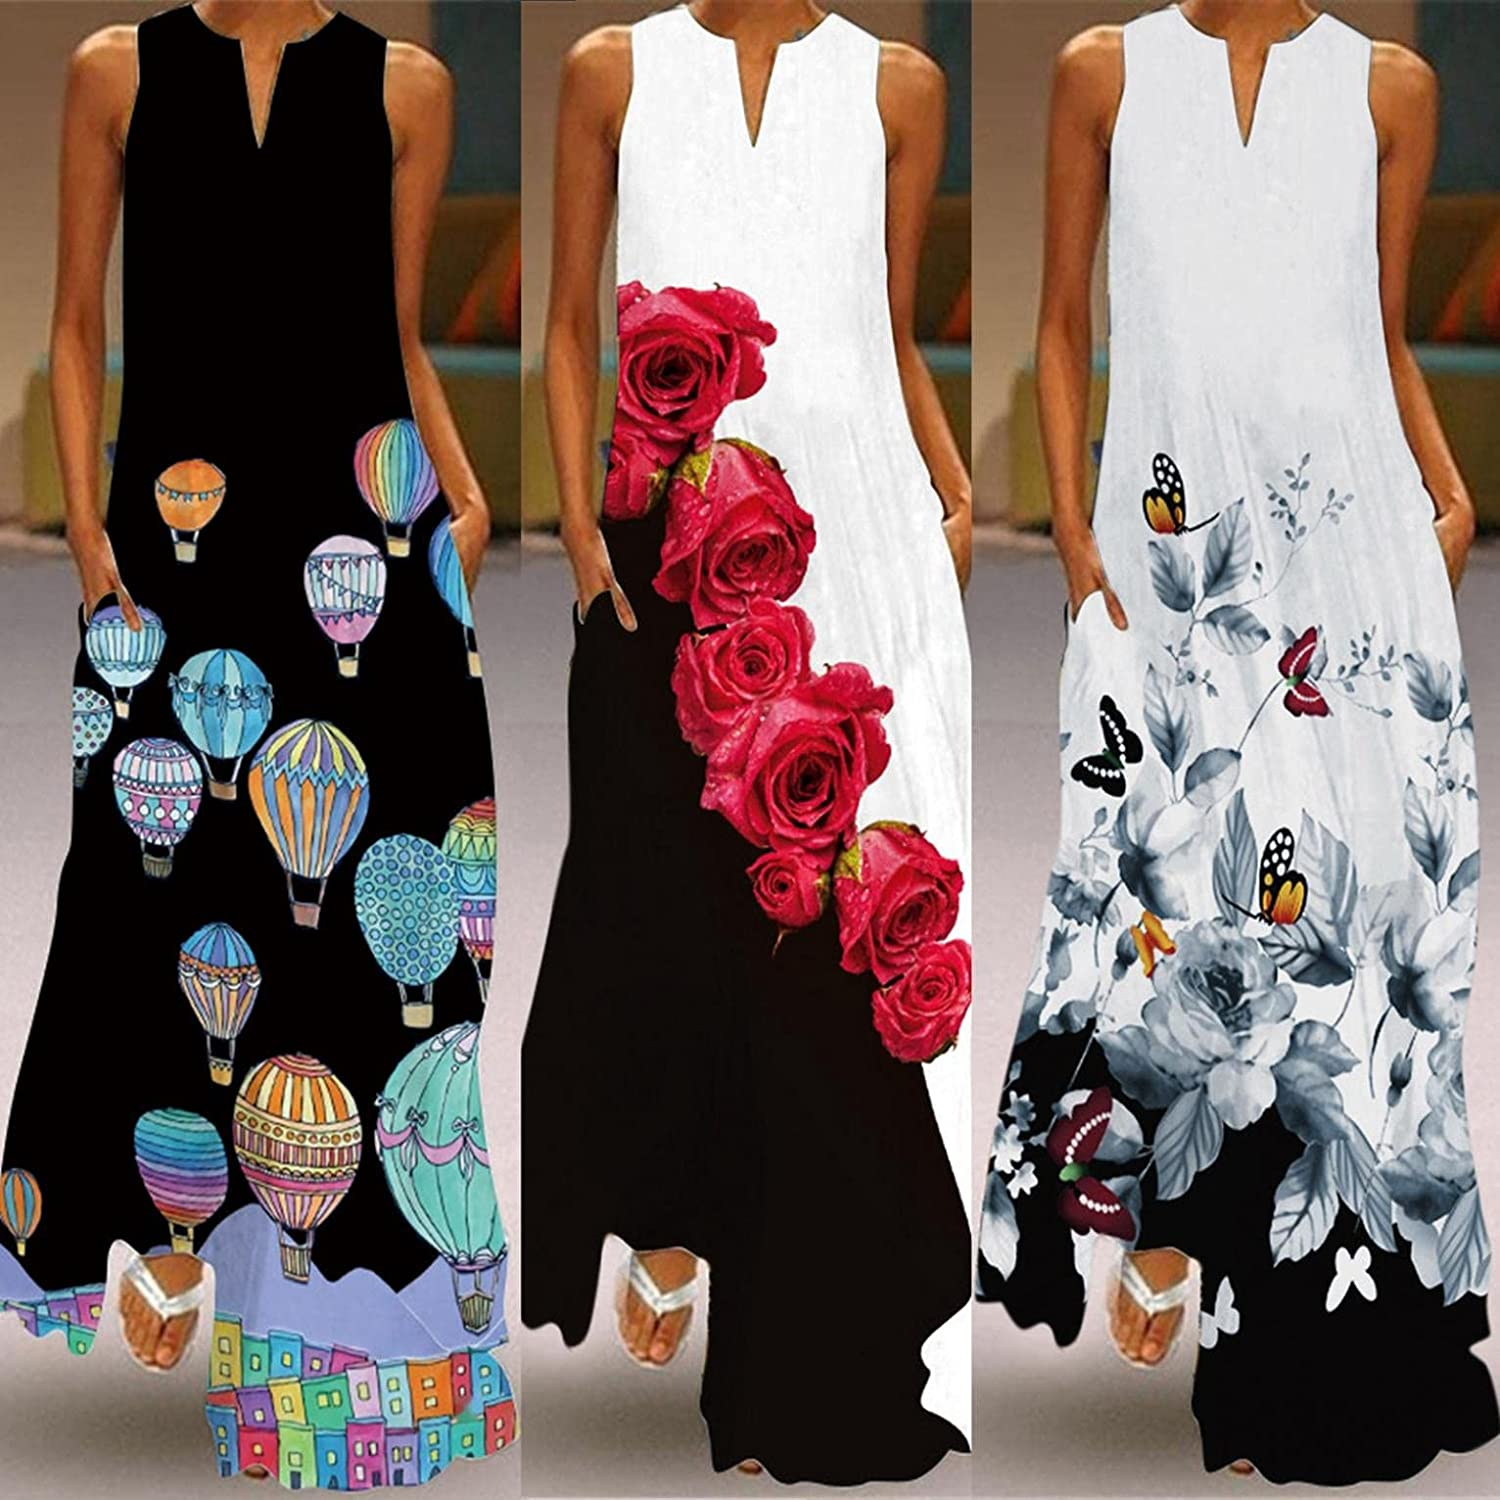 INNOVIERA Dresses for Summer Casual,Women's Plus Size Long Maxi Boho Floral Print V Neck Maxi Dresses with Pockets